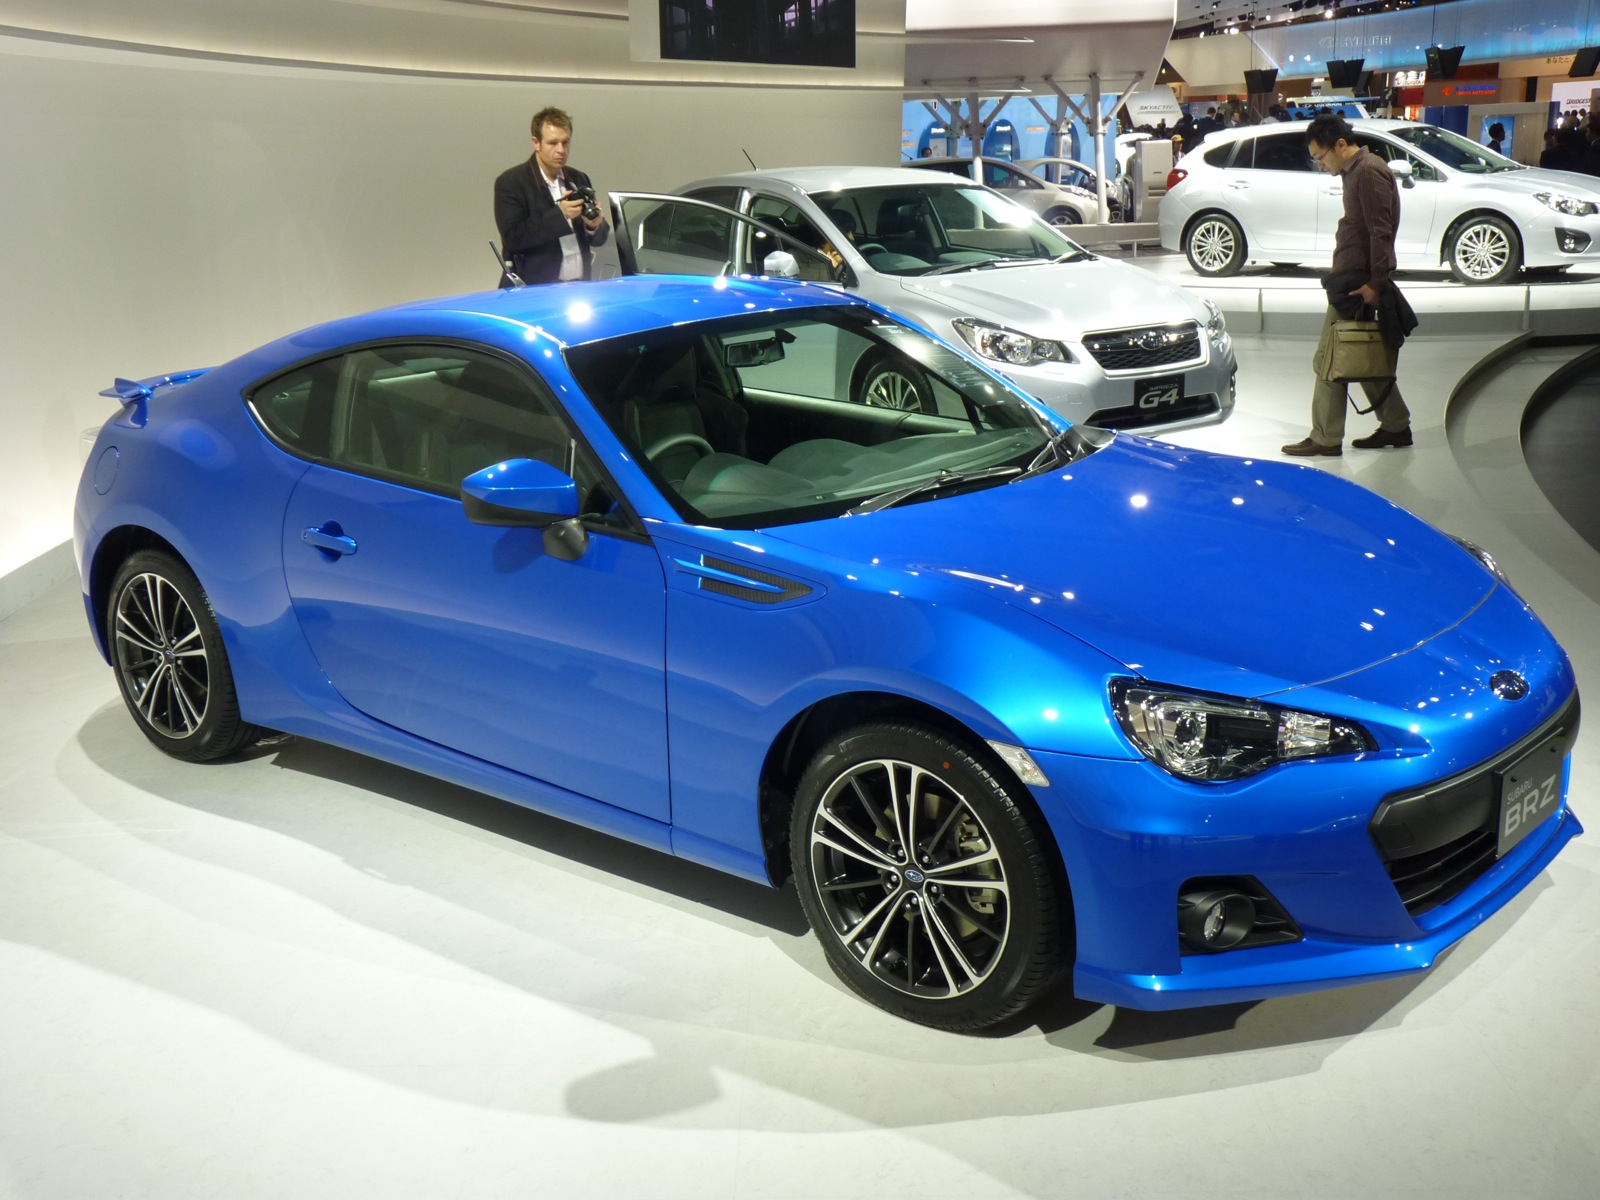 Used Cars Las Vegas >> 2013 Subaru BRZ Live Photos And Video: 2011 Tokyo Motor Show